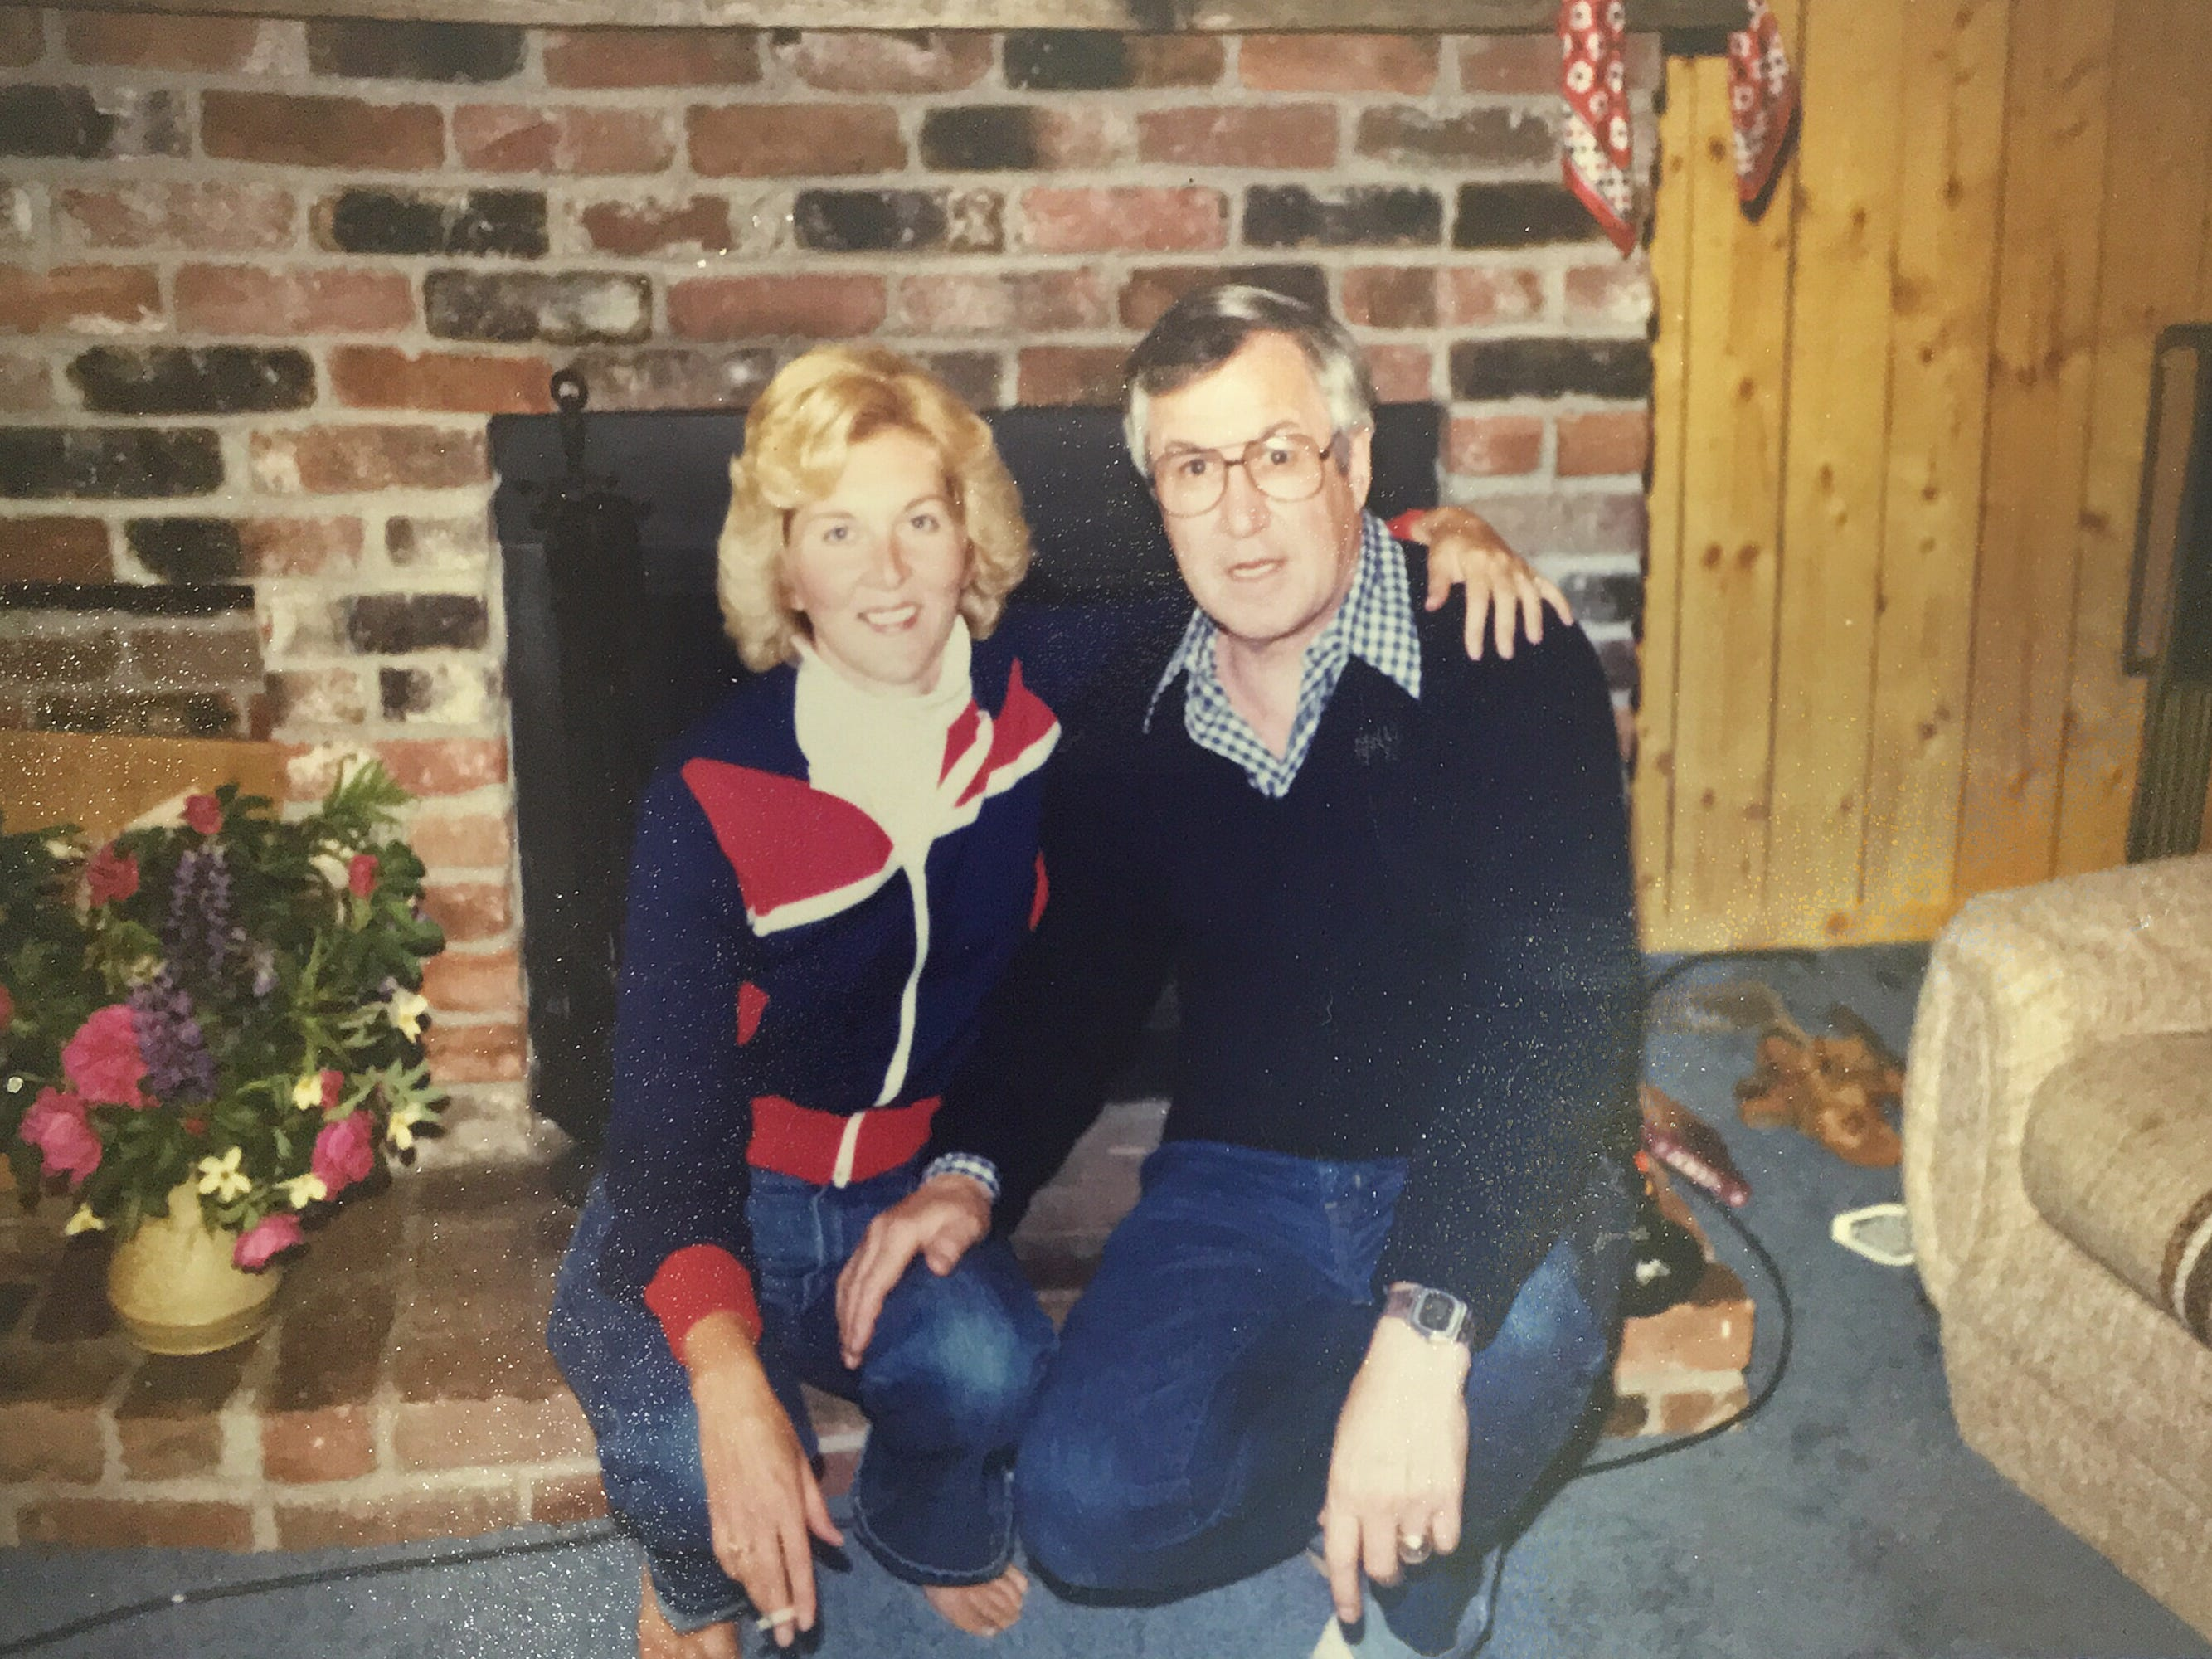 Bonnie and Joe Crozier pose in front of the fireplace at their home in Vancouver.